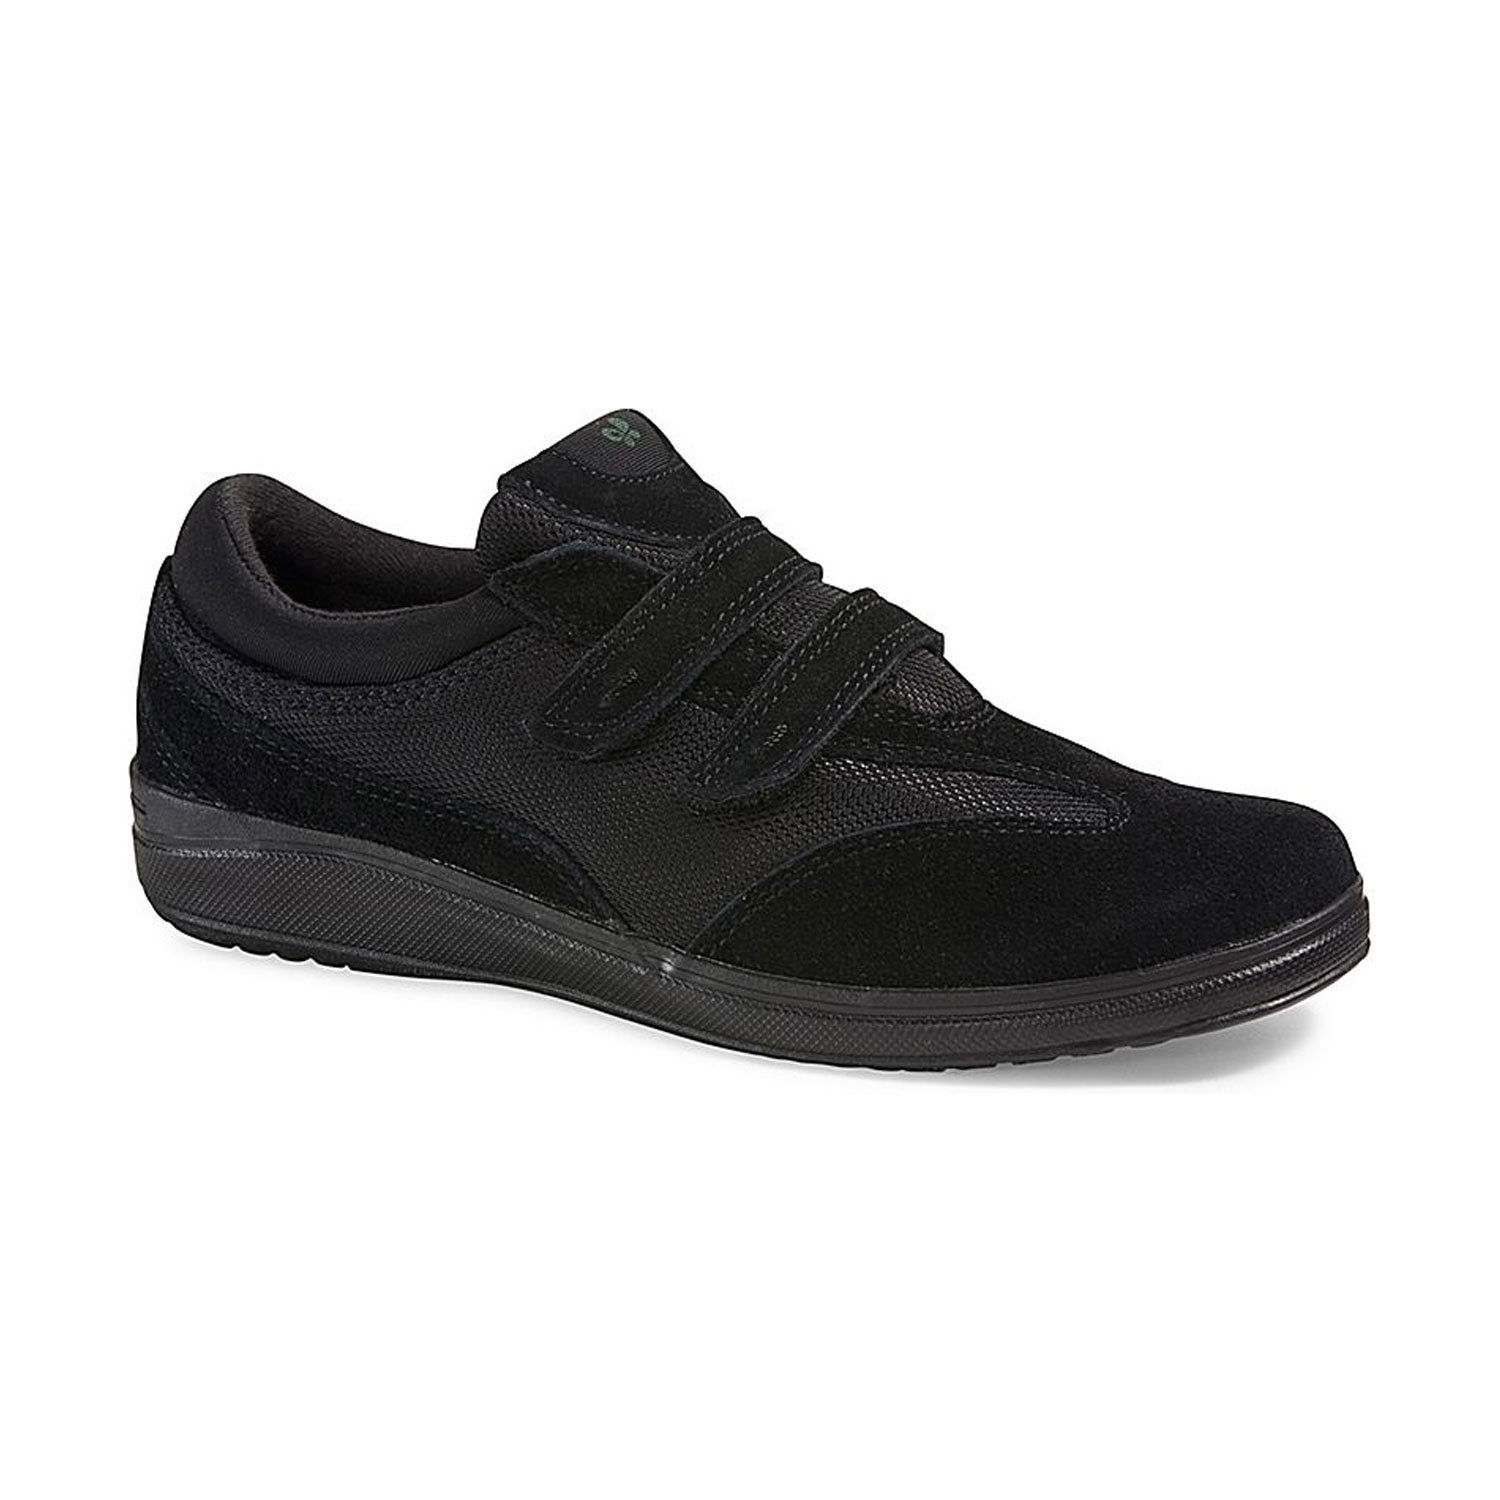 Grasshoppers Women's Stretch Plus Strap Suede Size 7 Black by Keds